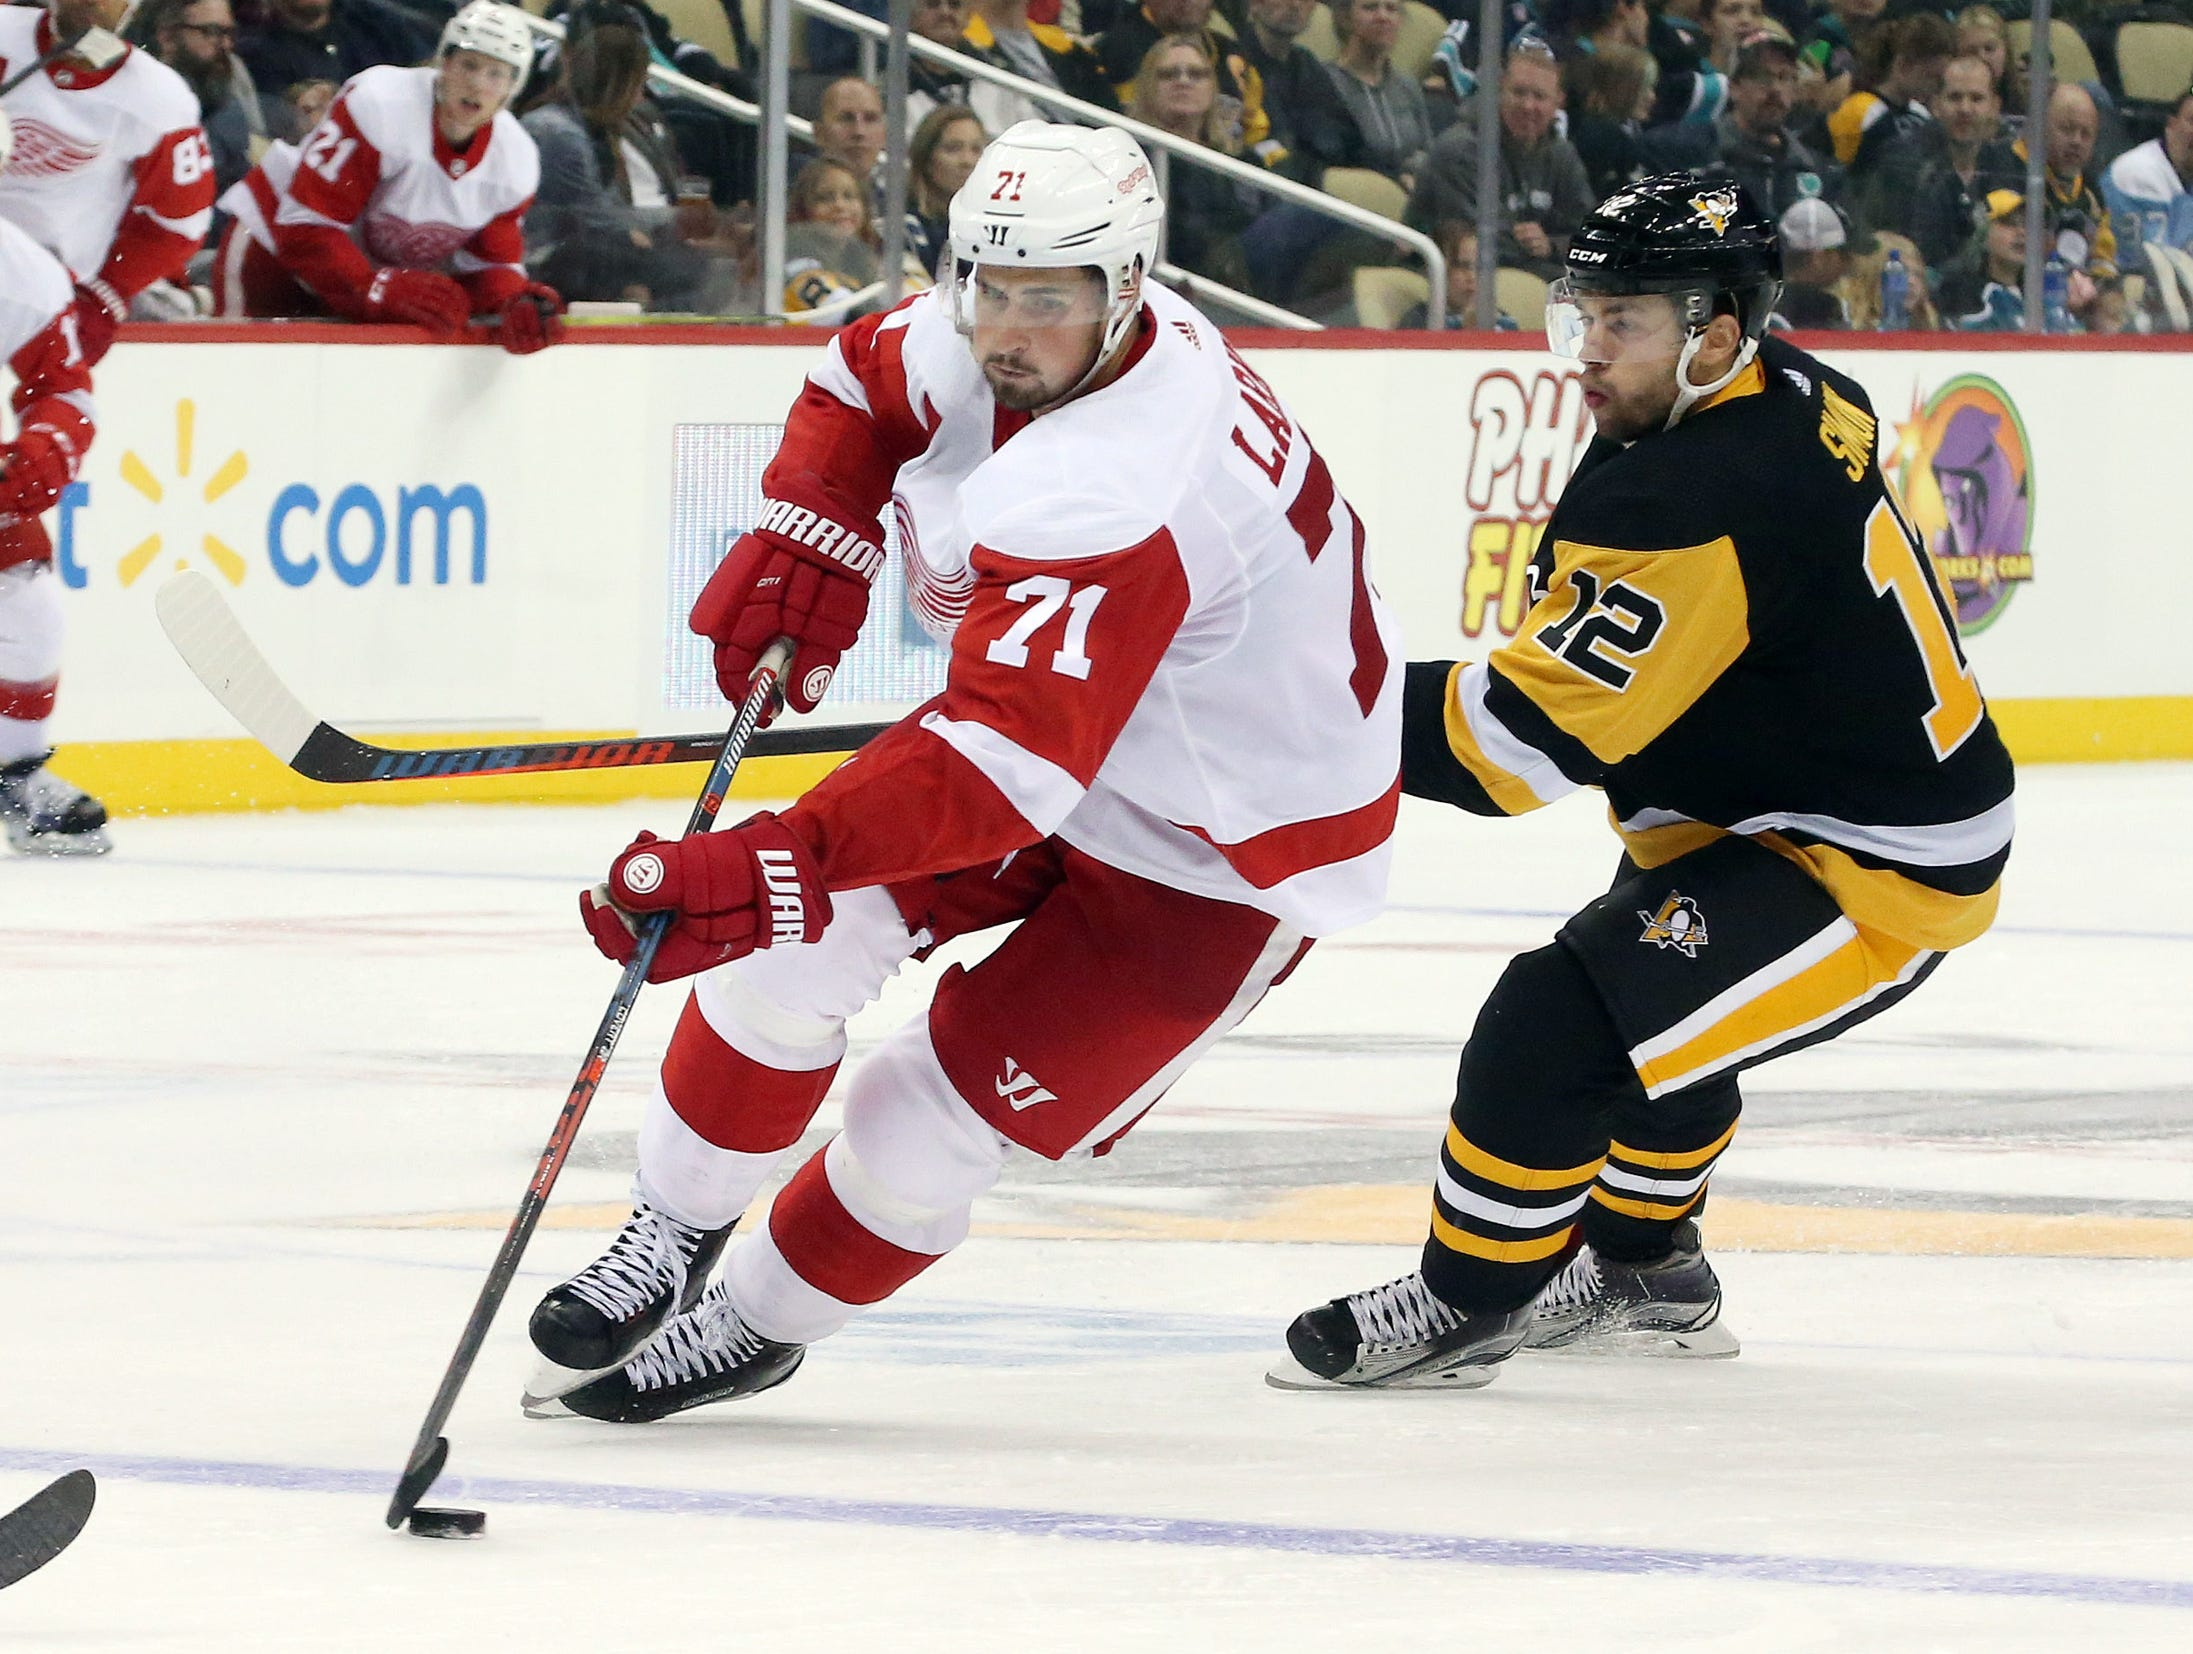 Nhl Preseason Detroit Red Wings At Pittsburgh Penguins